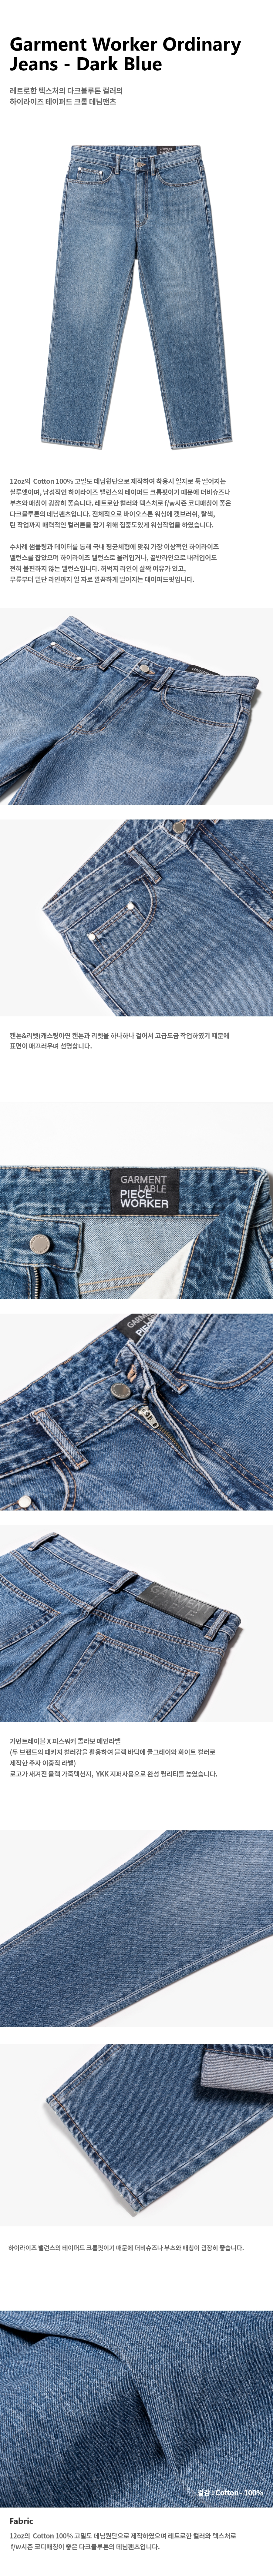 가먼트레이블(GARMENT LABLE) [2차 리오더]Garment Worker Ordinary Jeans / Tapered (Dark Blue)